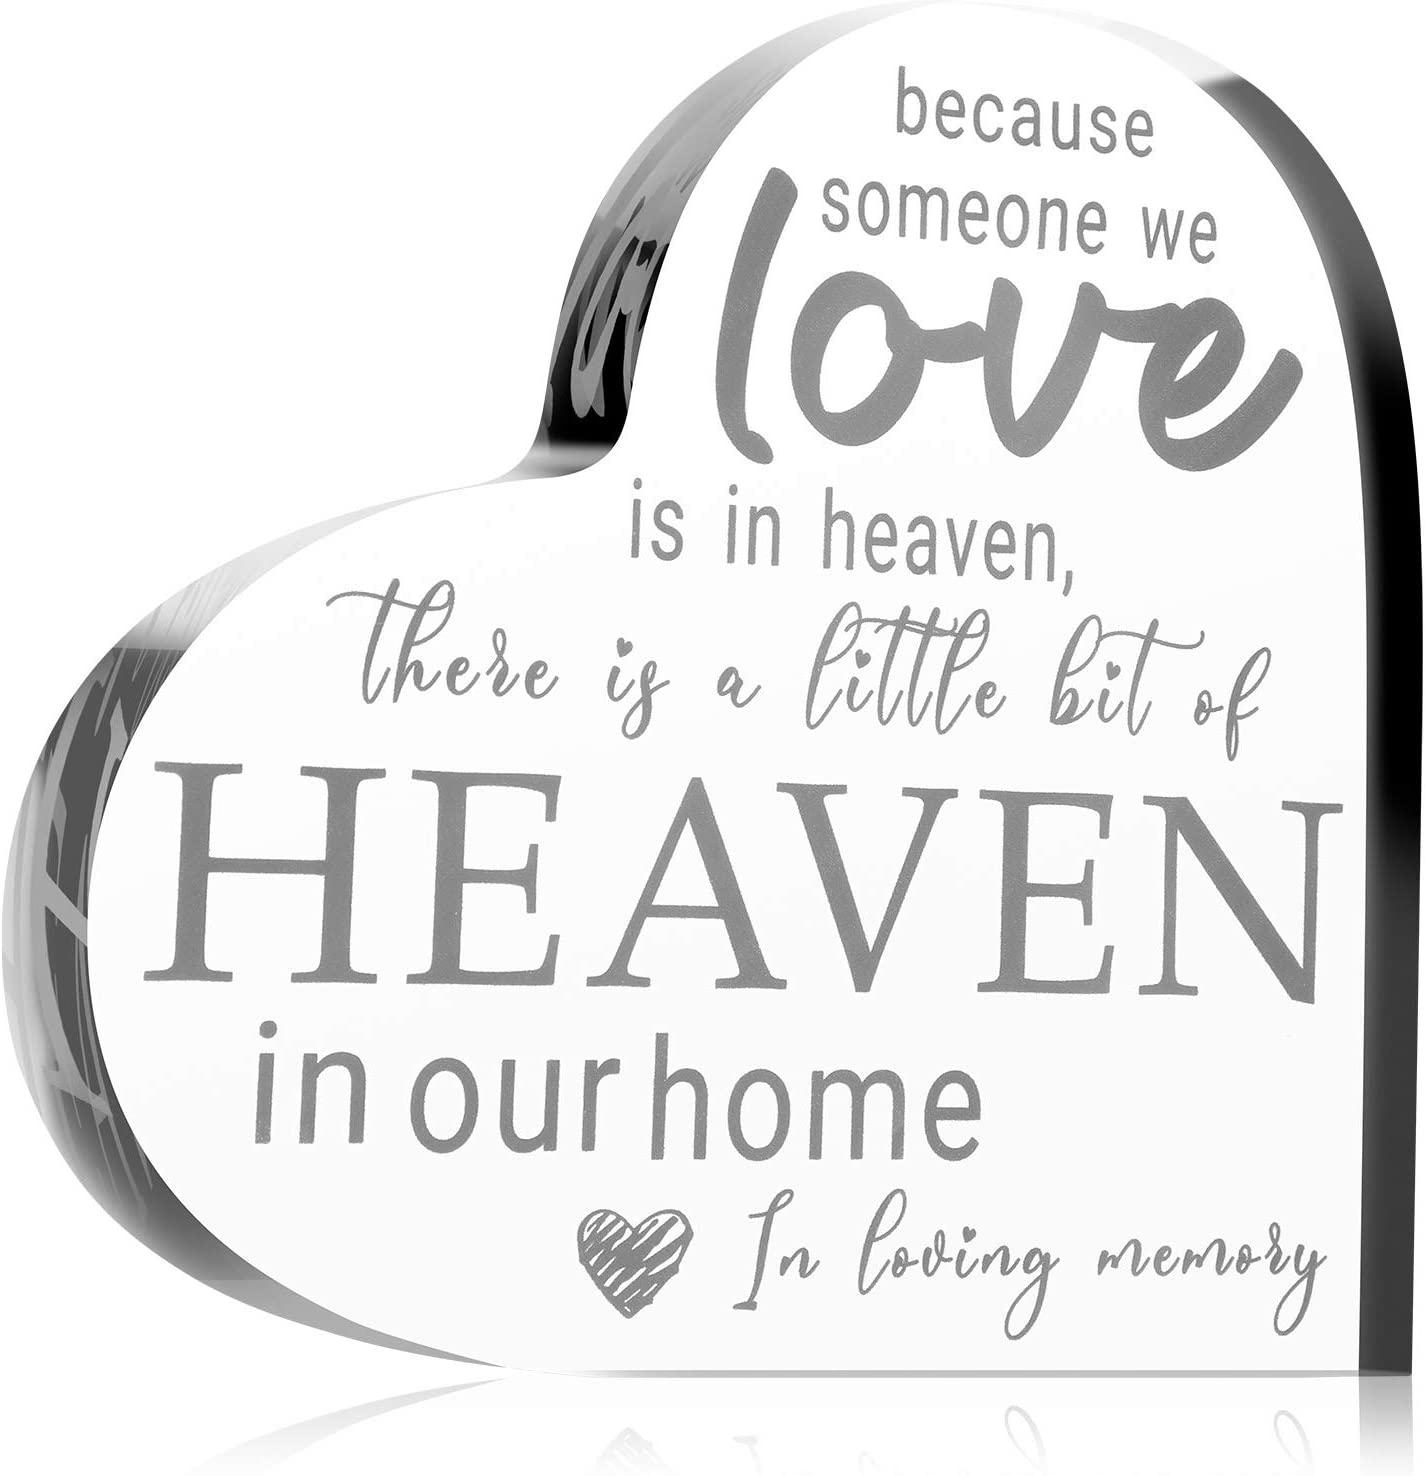 Sympathy Gifts Memorial Bereavement Gifts Crystal Glass Heart Condolence Gifts for Loss of Loved One, Loss of Father, Loss of Mother Remembrance Gifts (White)